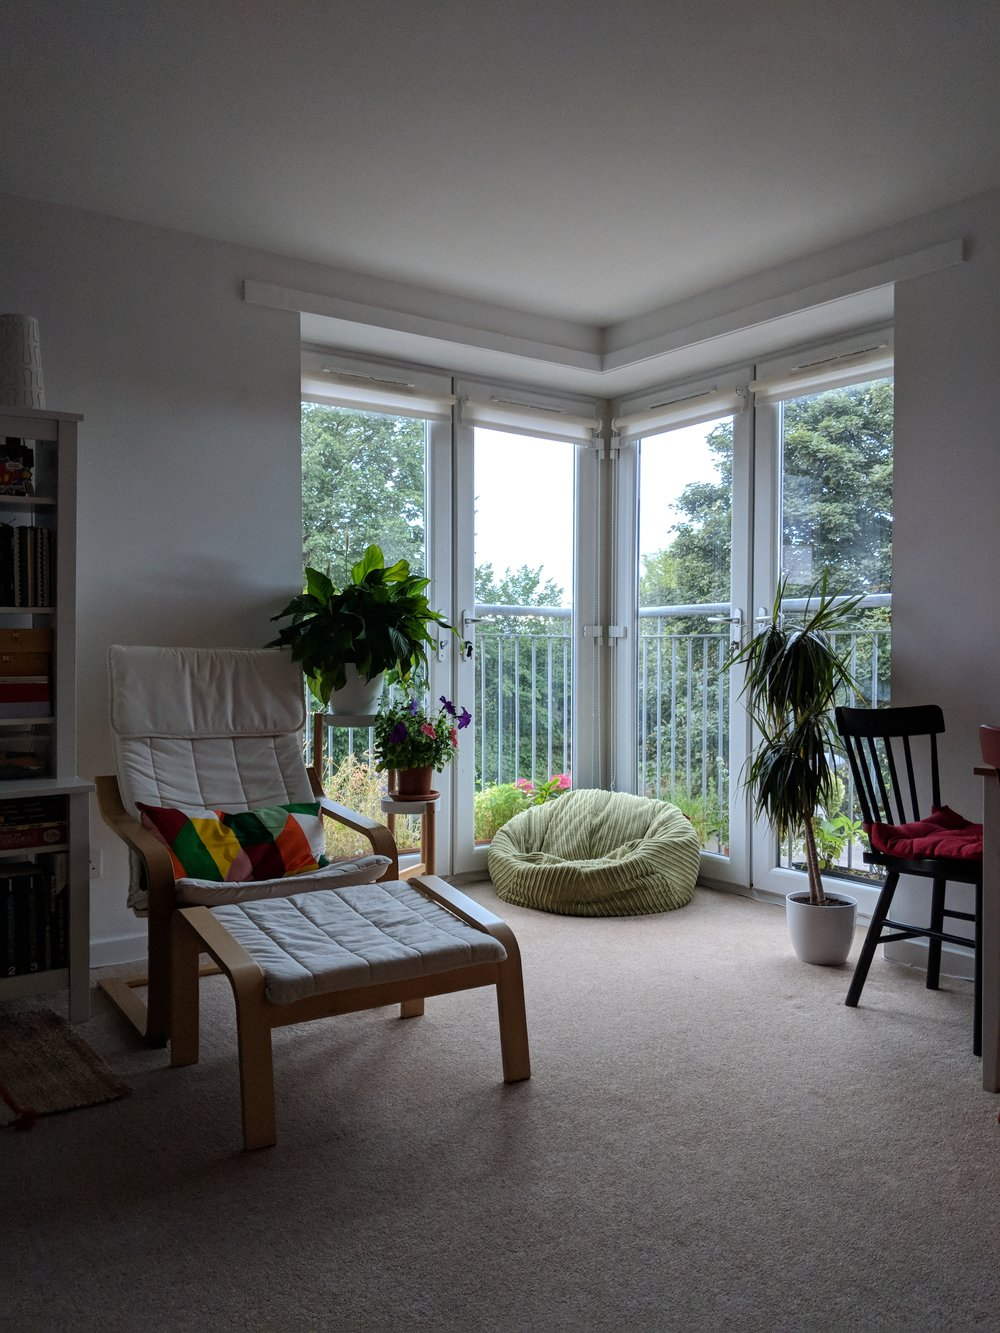 Airbnb Edinburgh, Scotland